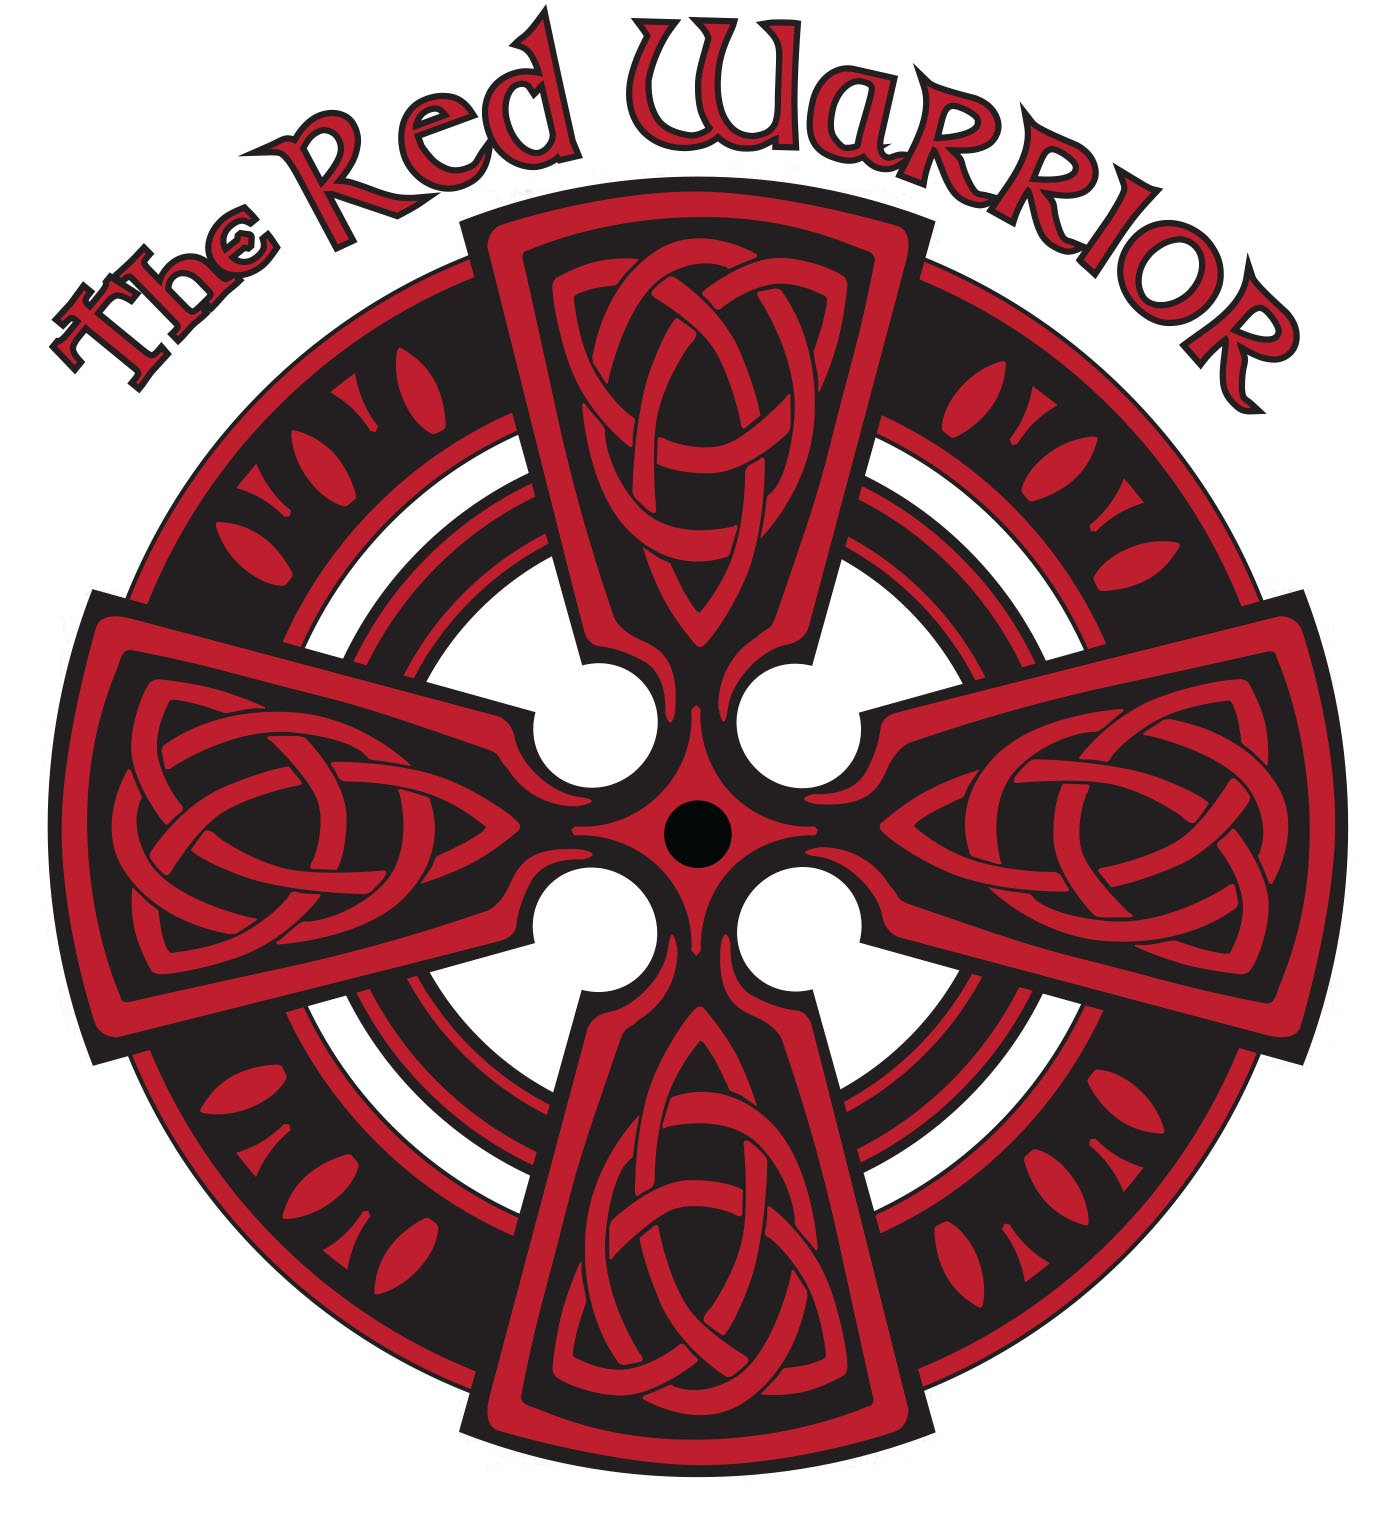 Red Warrior Events's logo